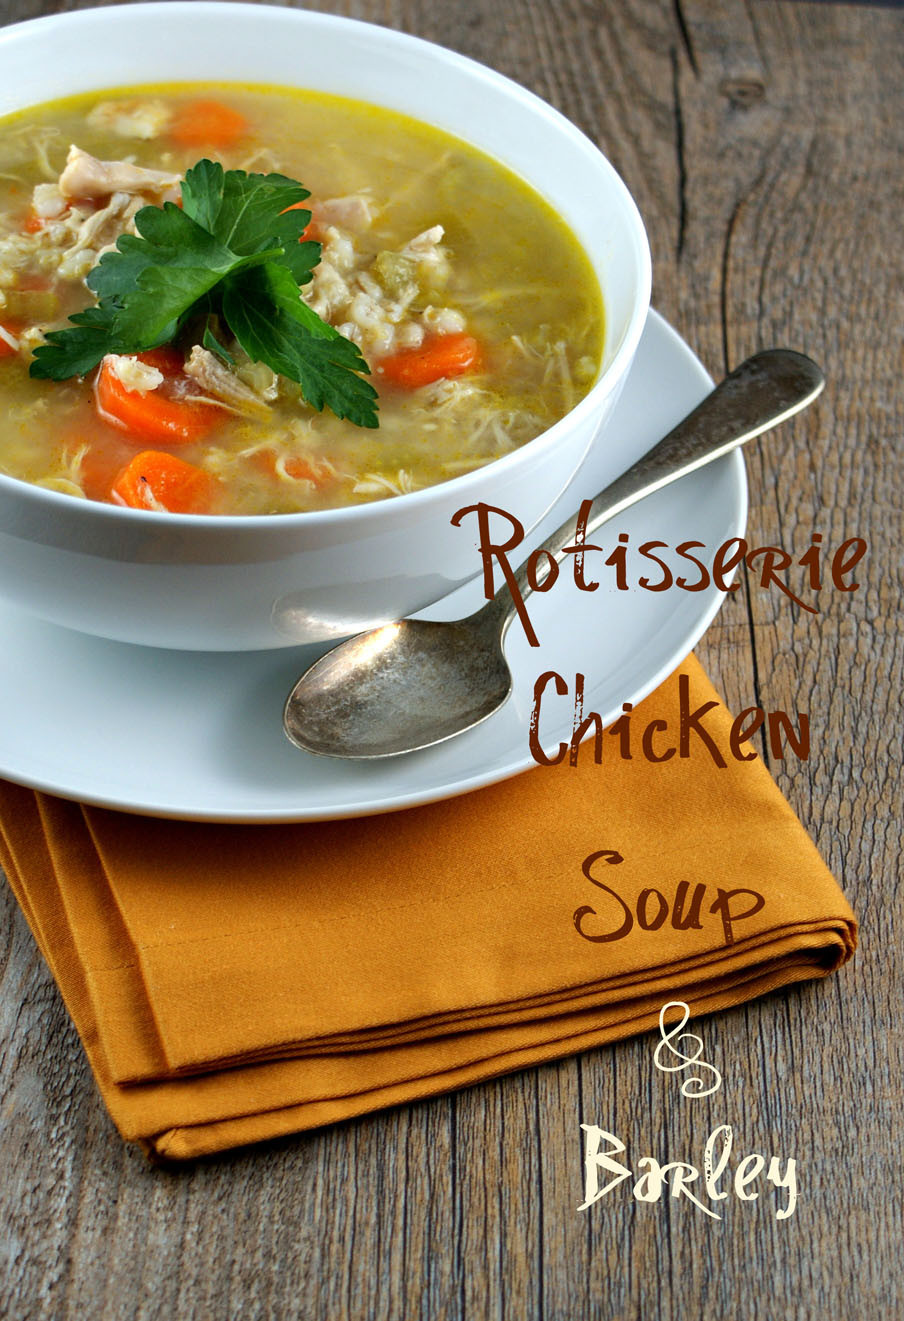 Rotisserie Chicken Soup  Authentic Suburban Gourmet Rotisserie Chicken & Barley Soup